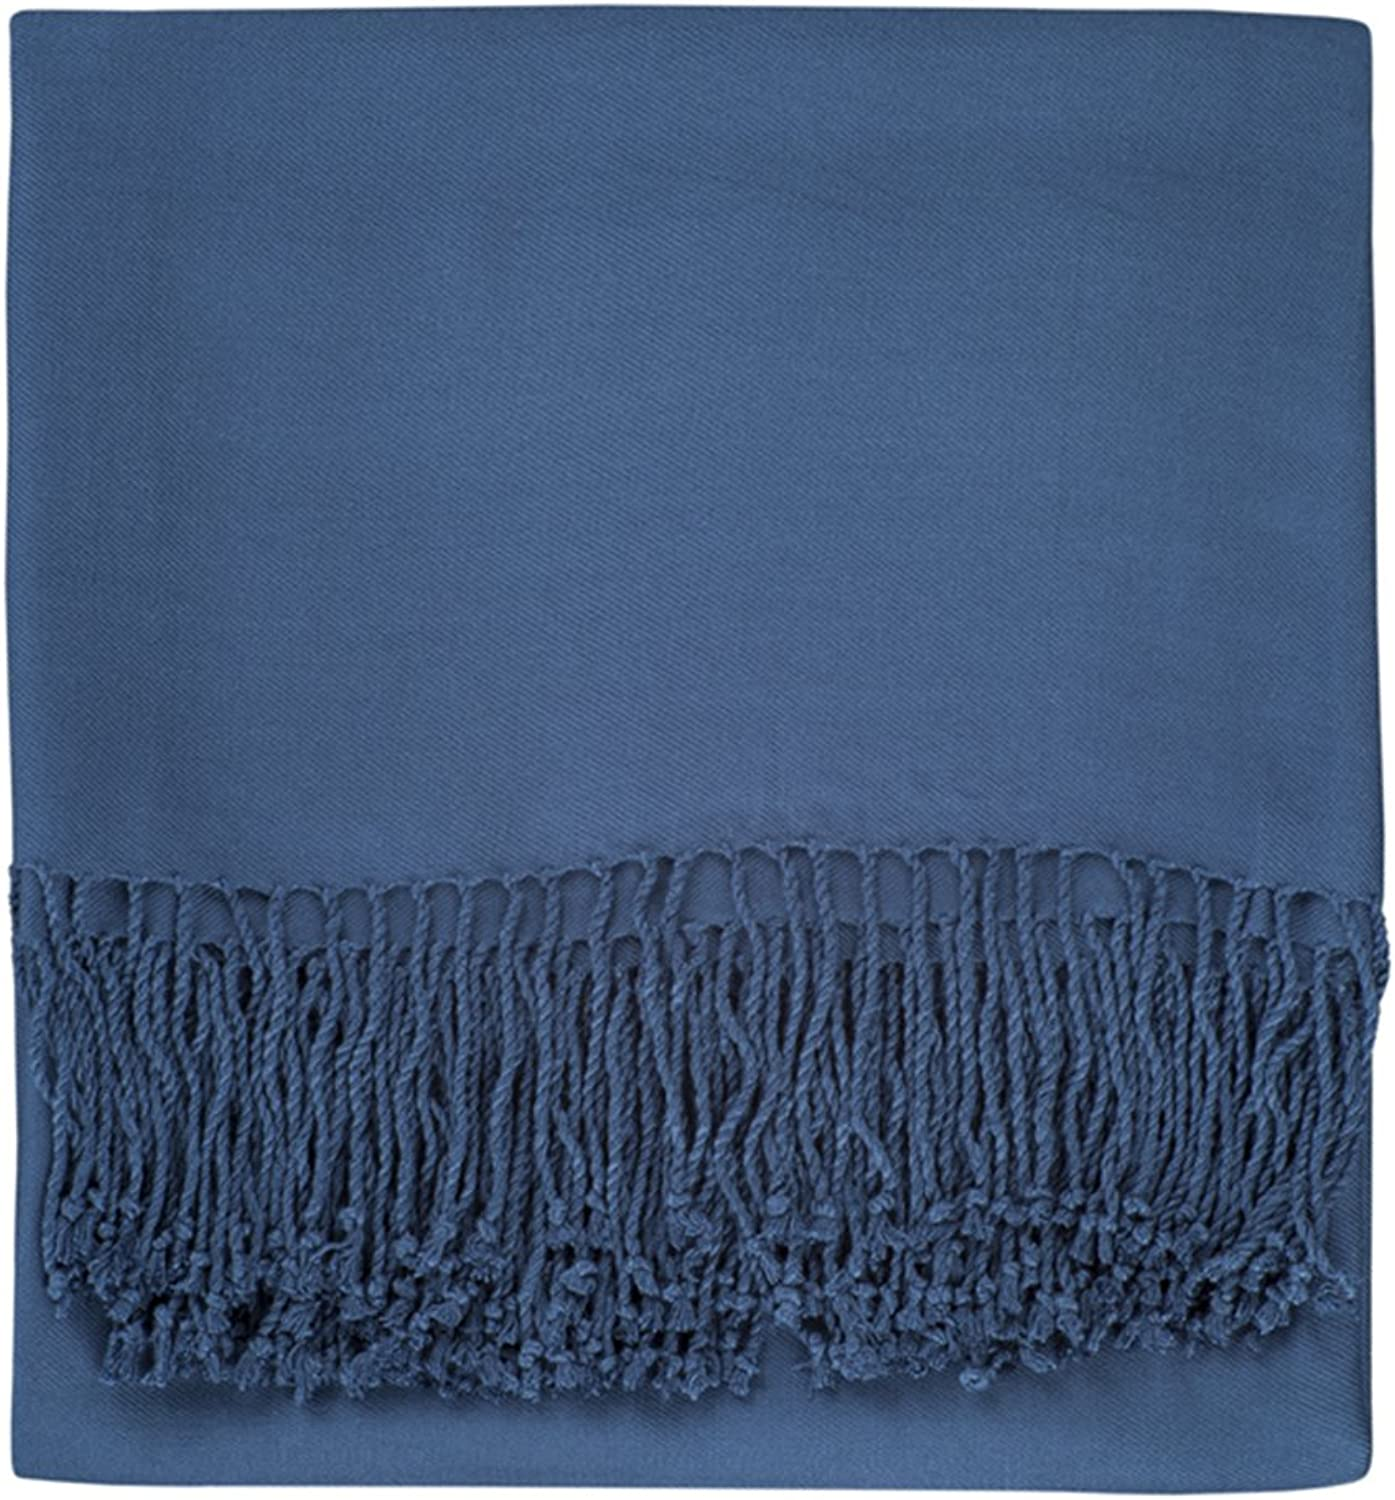 Nine Space Viscose from Bamboo Solid Throw Blanket, Midnight bluee, 50  x 70